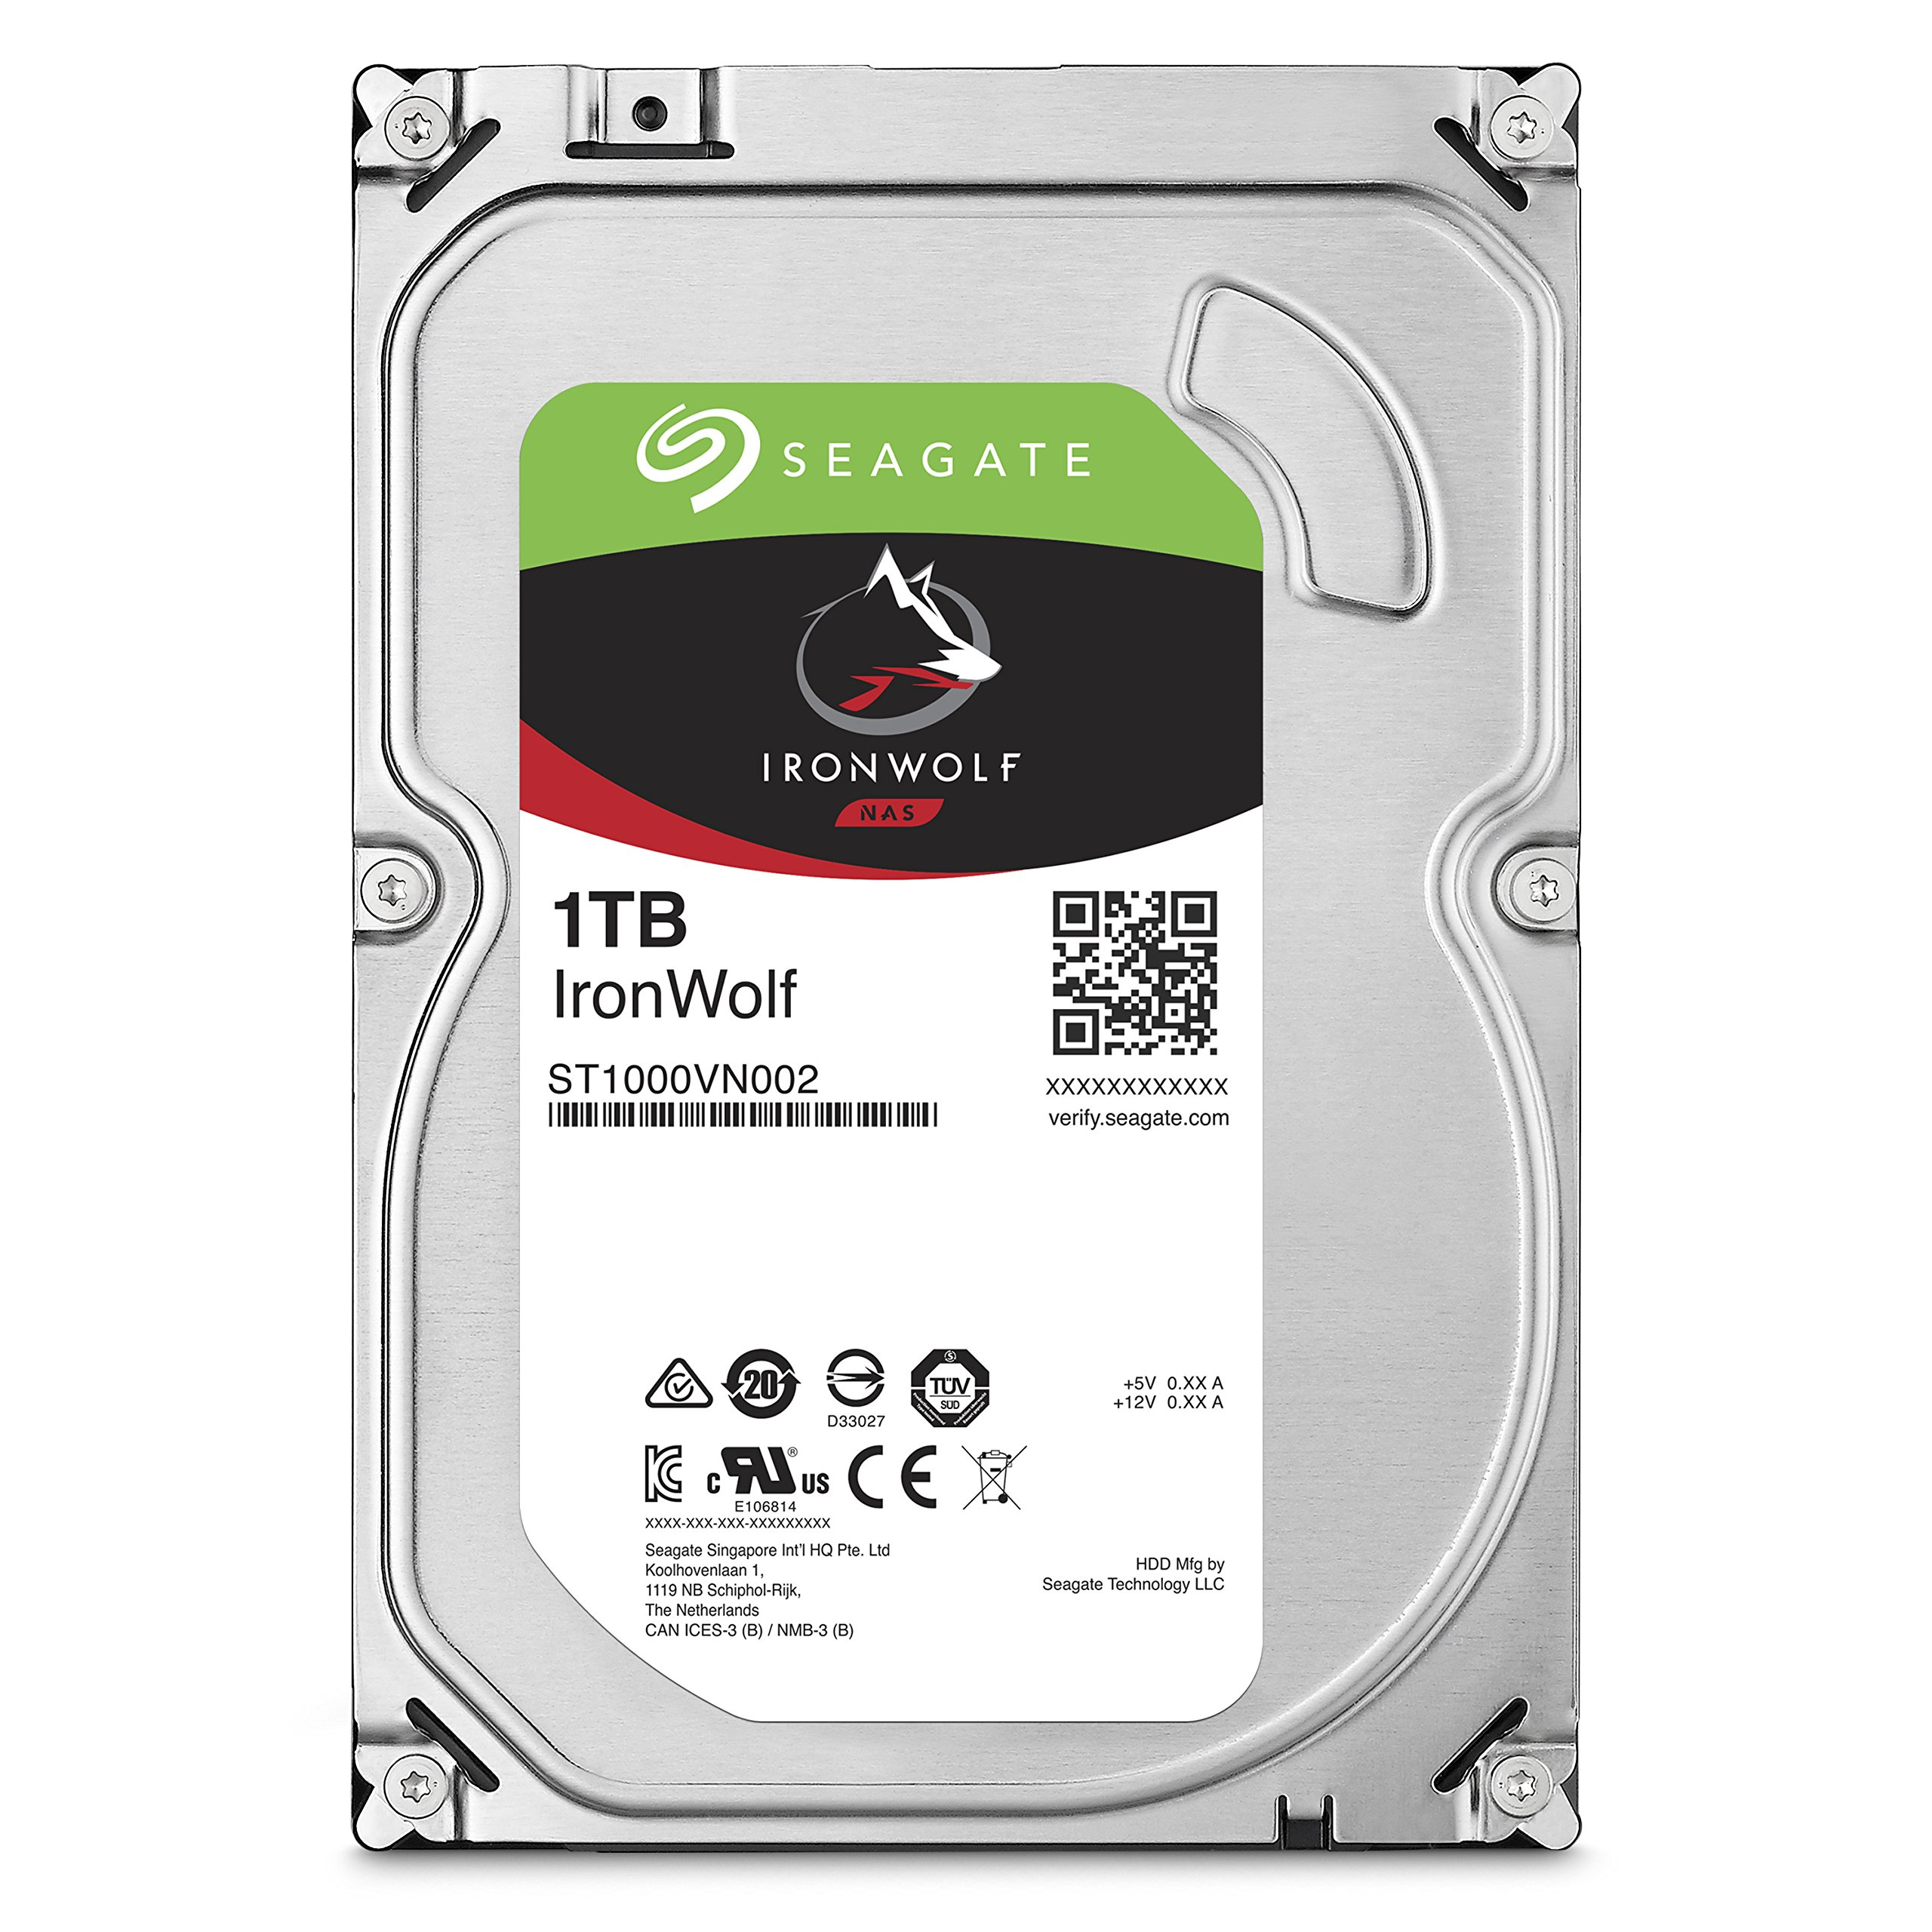 Seagate 1TB IronWolf NAS SATA 6Gb/s NCQ 64MB Cache 3.5-Inch Internal Hard Drive (ST1000VN002) by Seagate